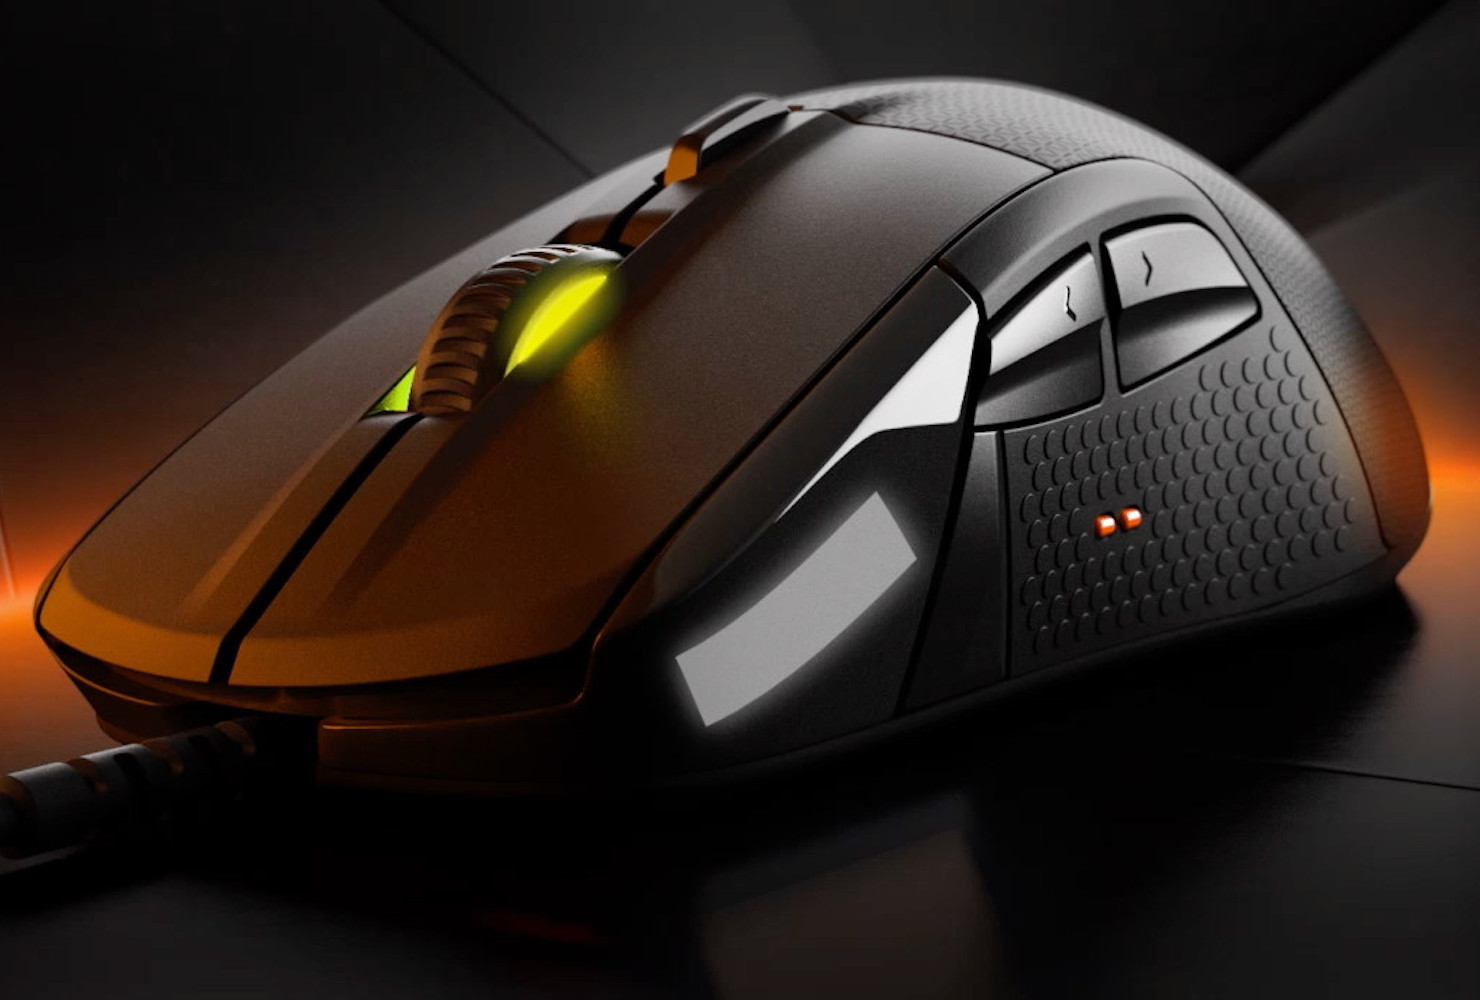 SteelSeries Rival 700 OLED Gaming Mouse